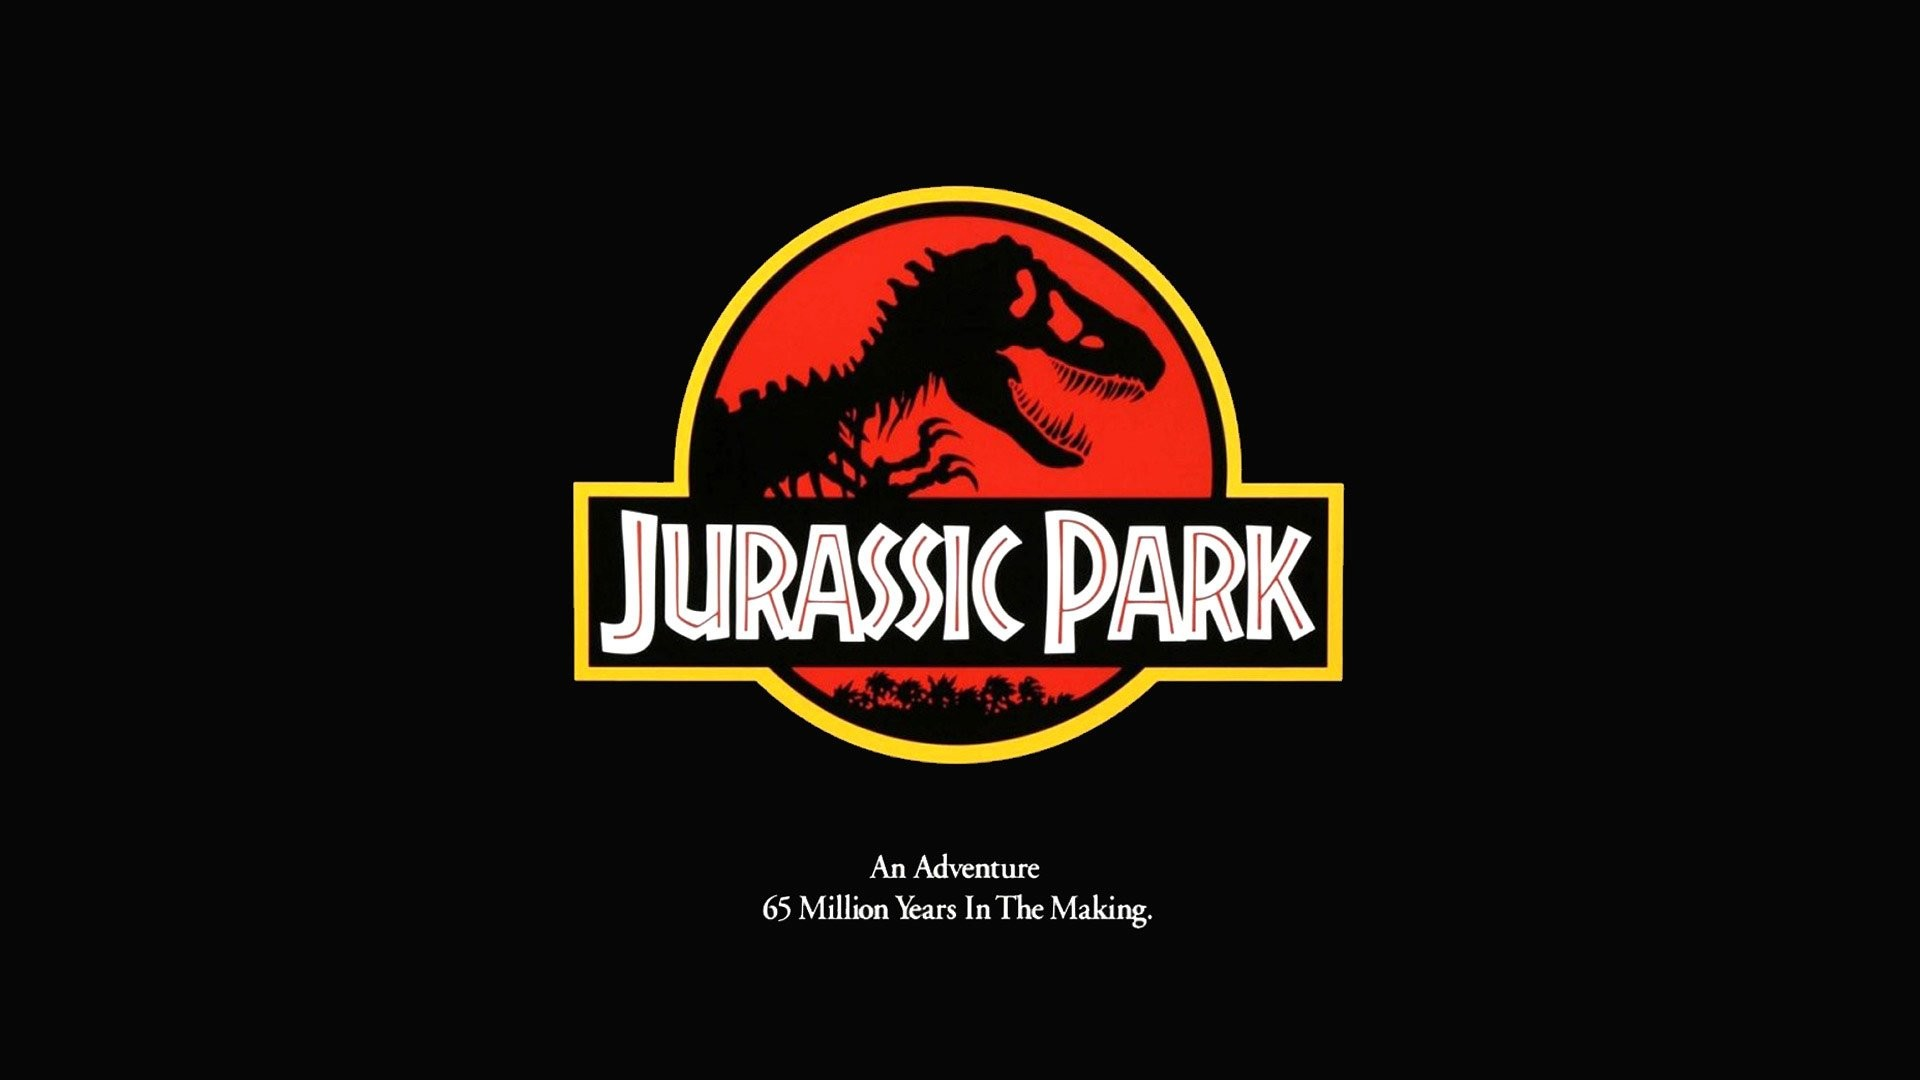 Jurassic Park Wallpapers 71 Images